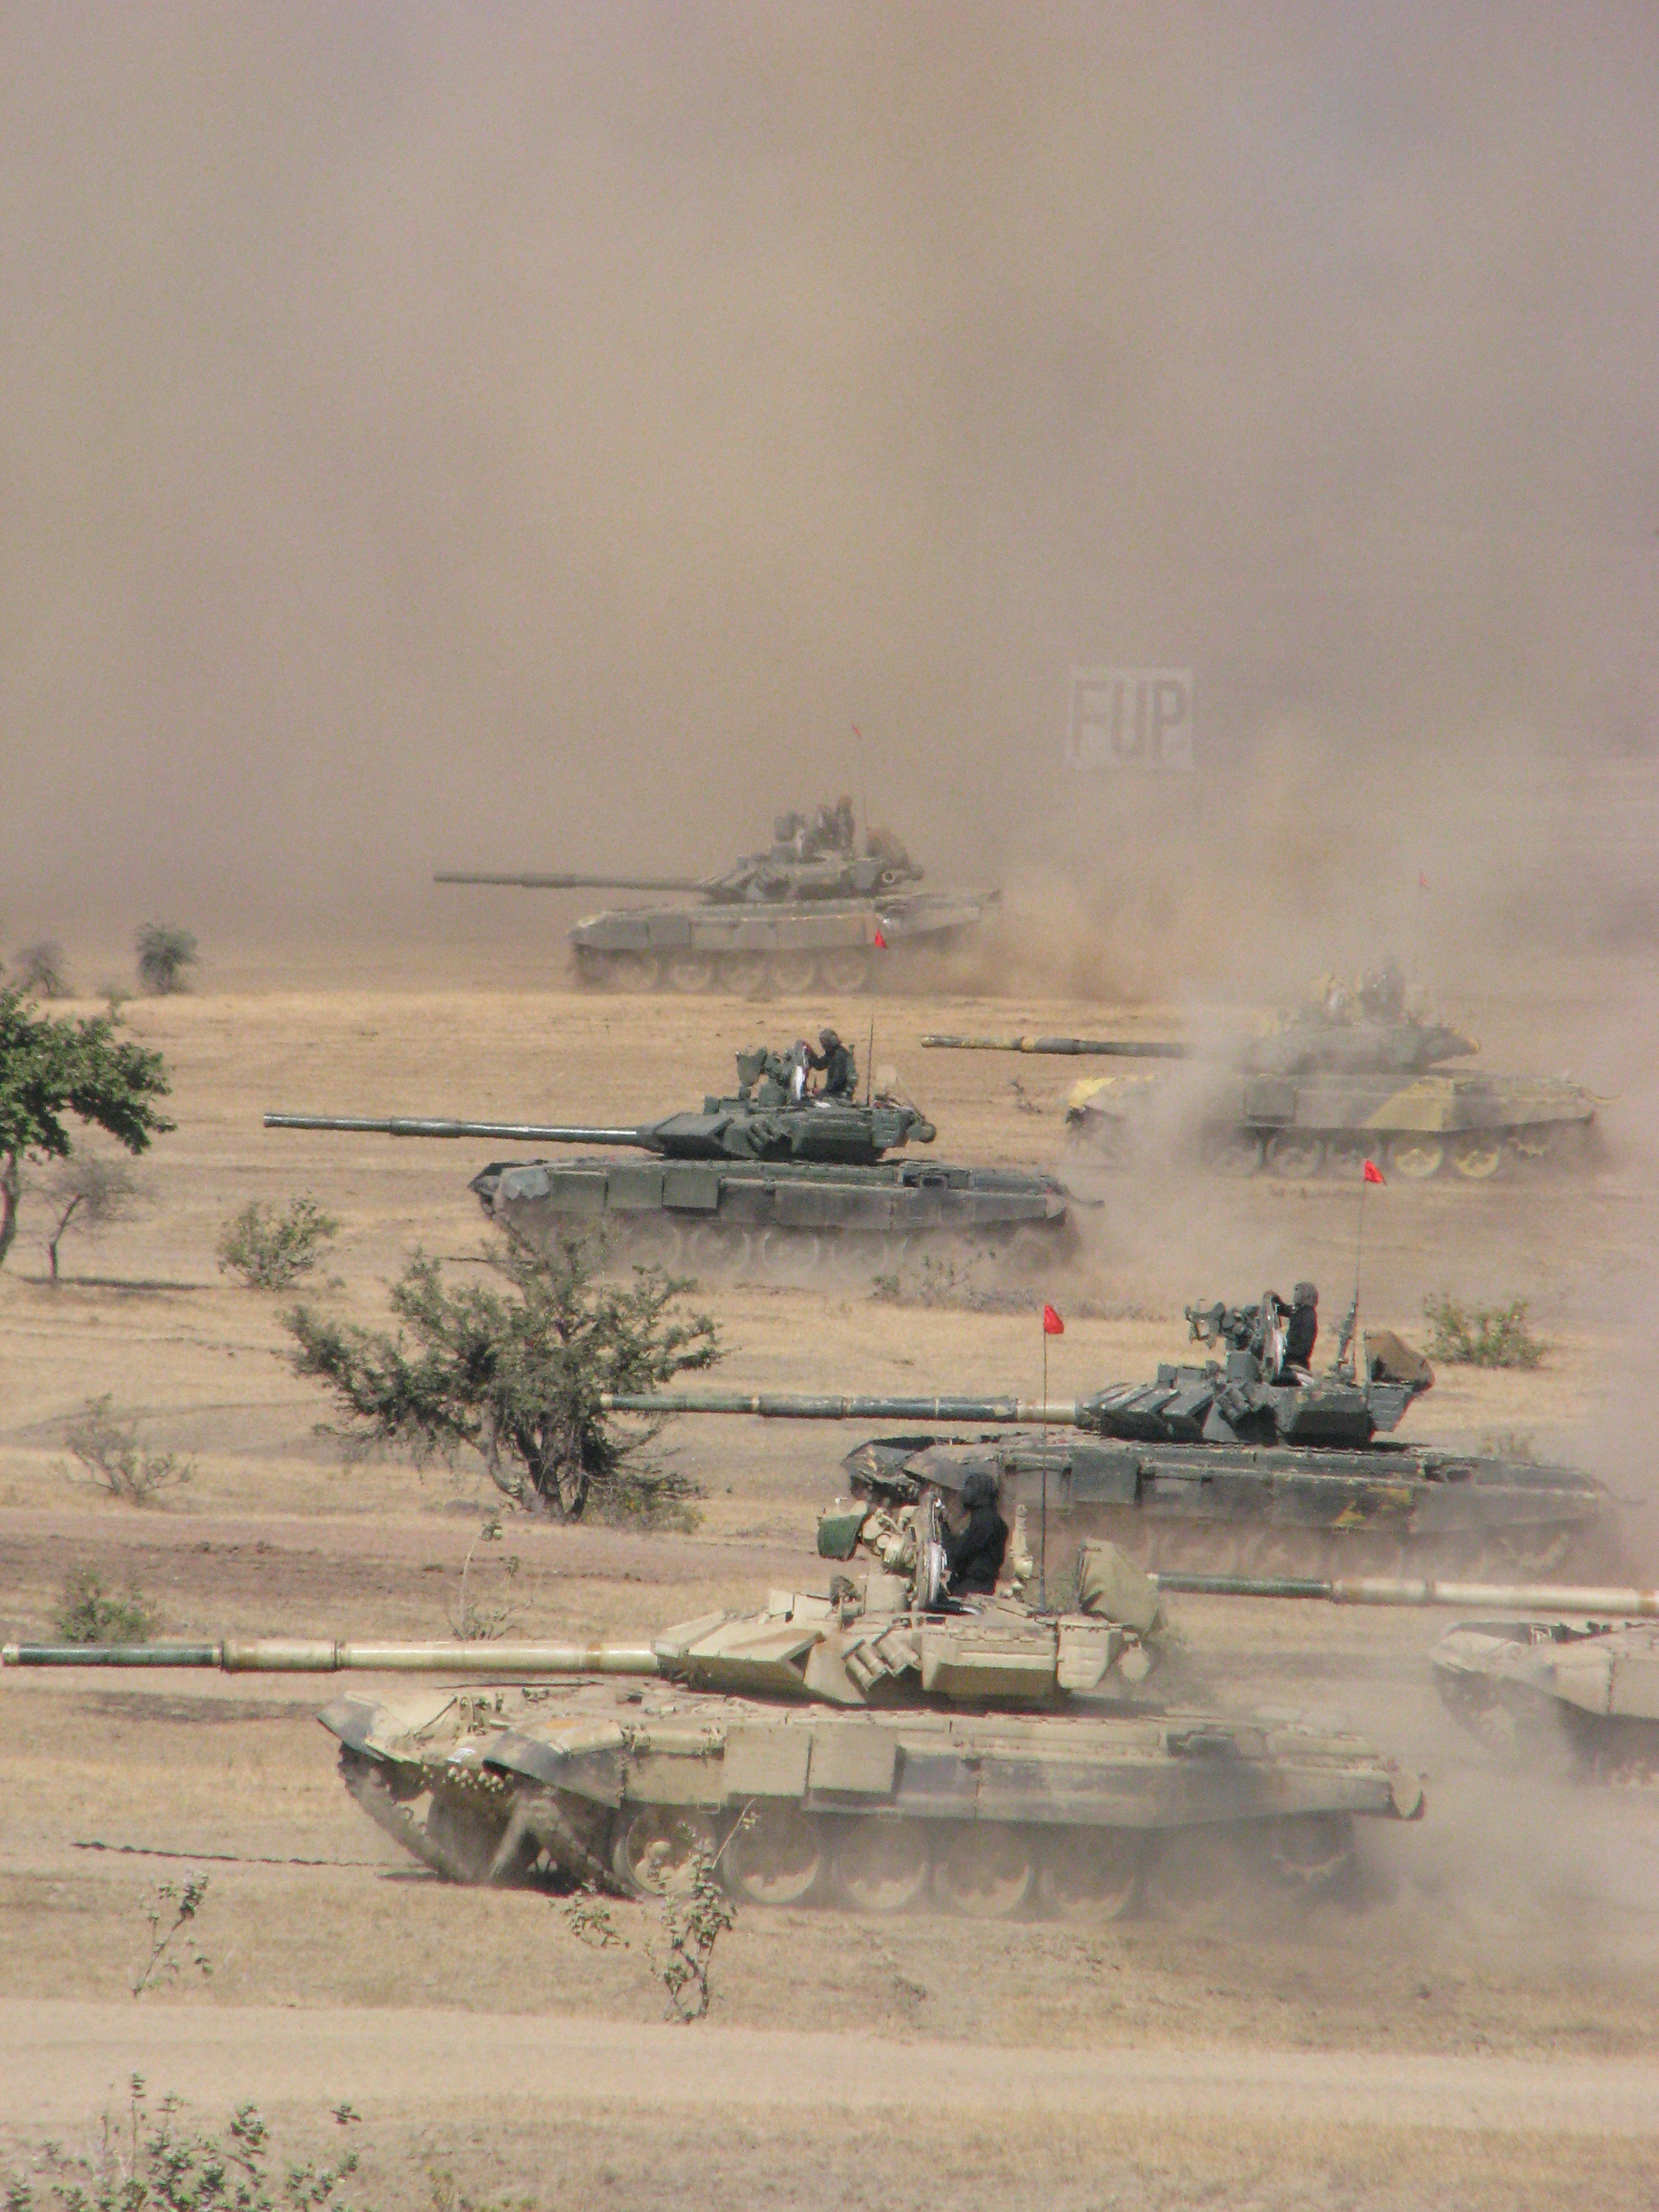 Indian Army s T 90 Bhishma tanks take part in a military training